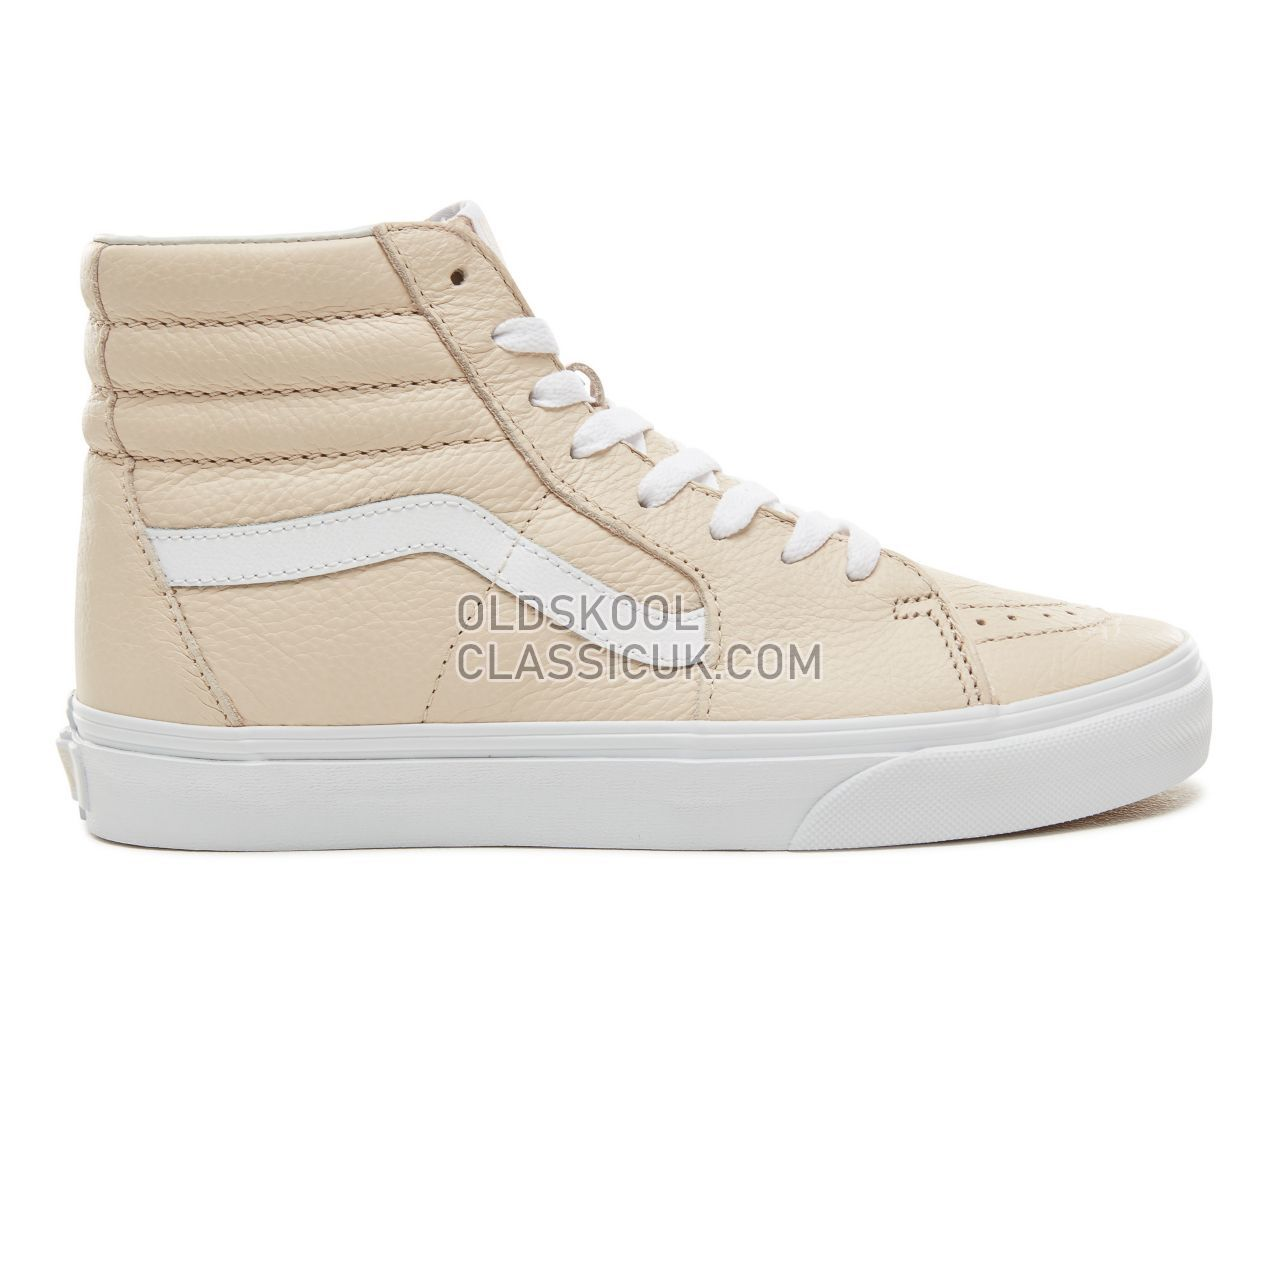 Vans Leather Sk8-Hi Sneakers Womens (Leather) Sand Dollar VA38GEUA8 Shoes